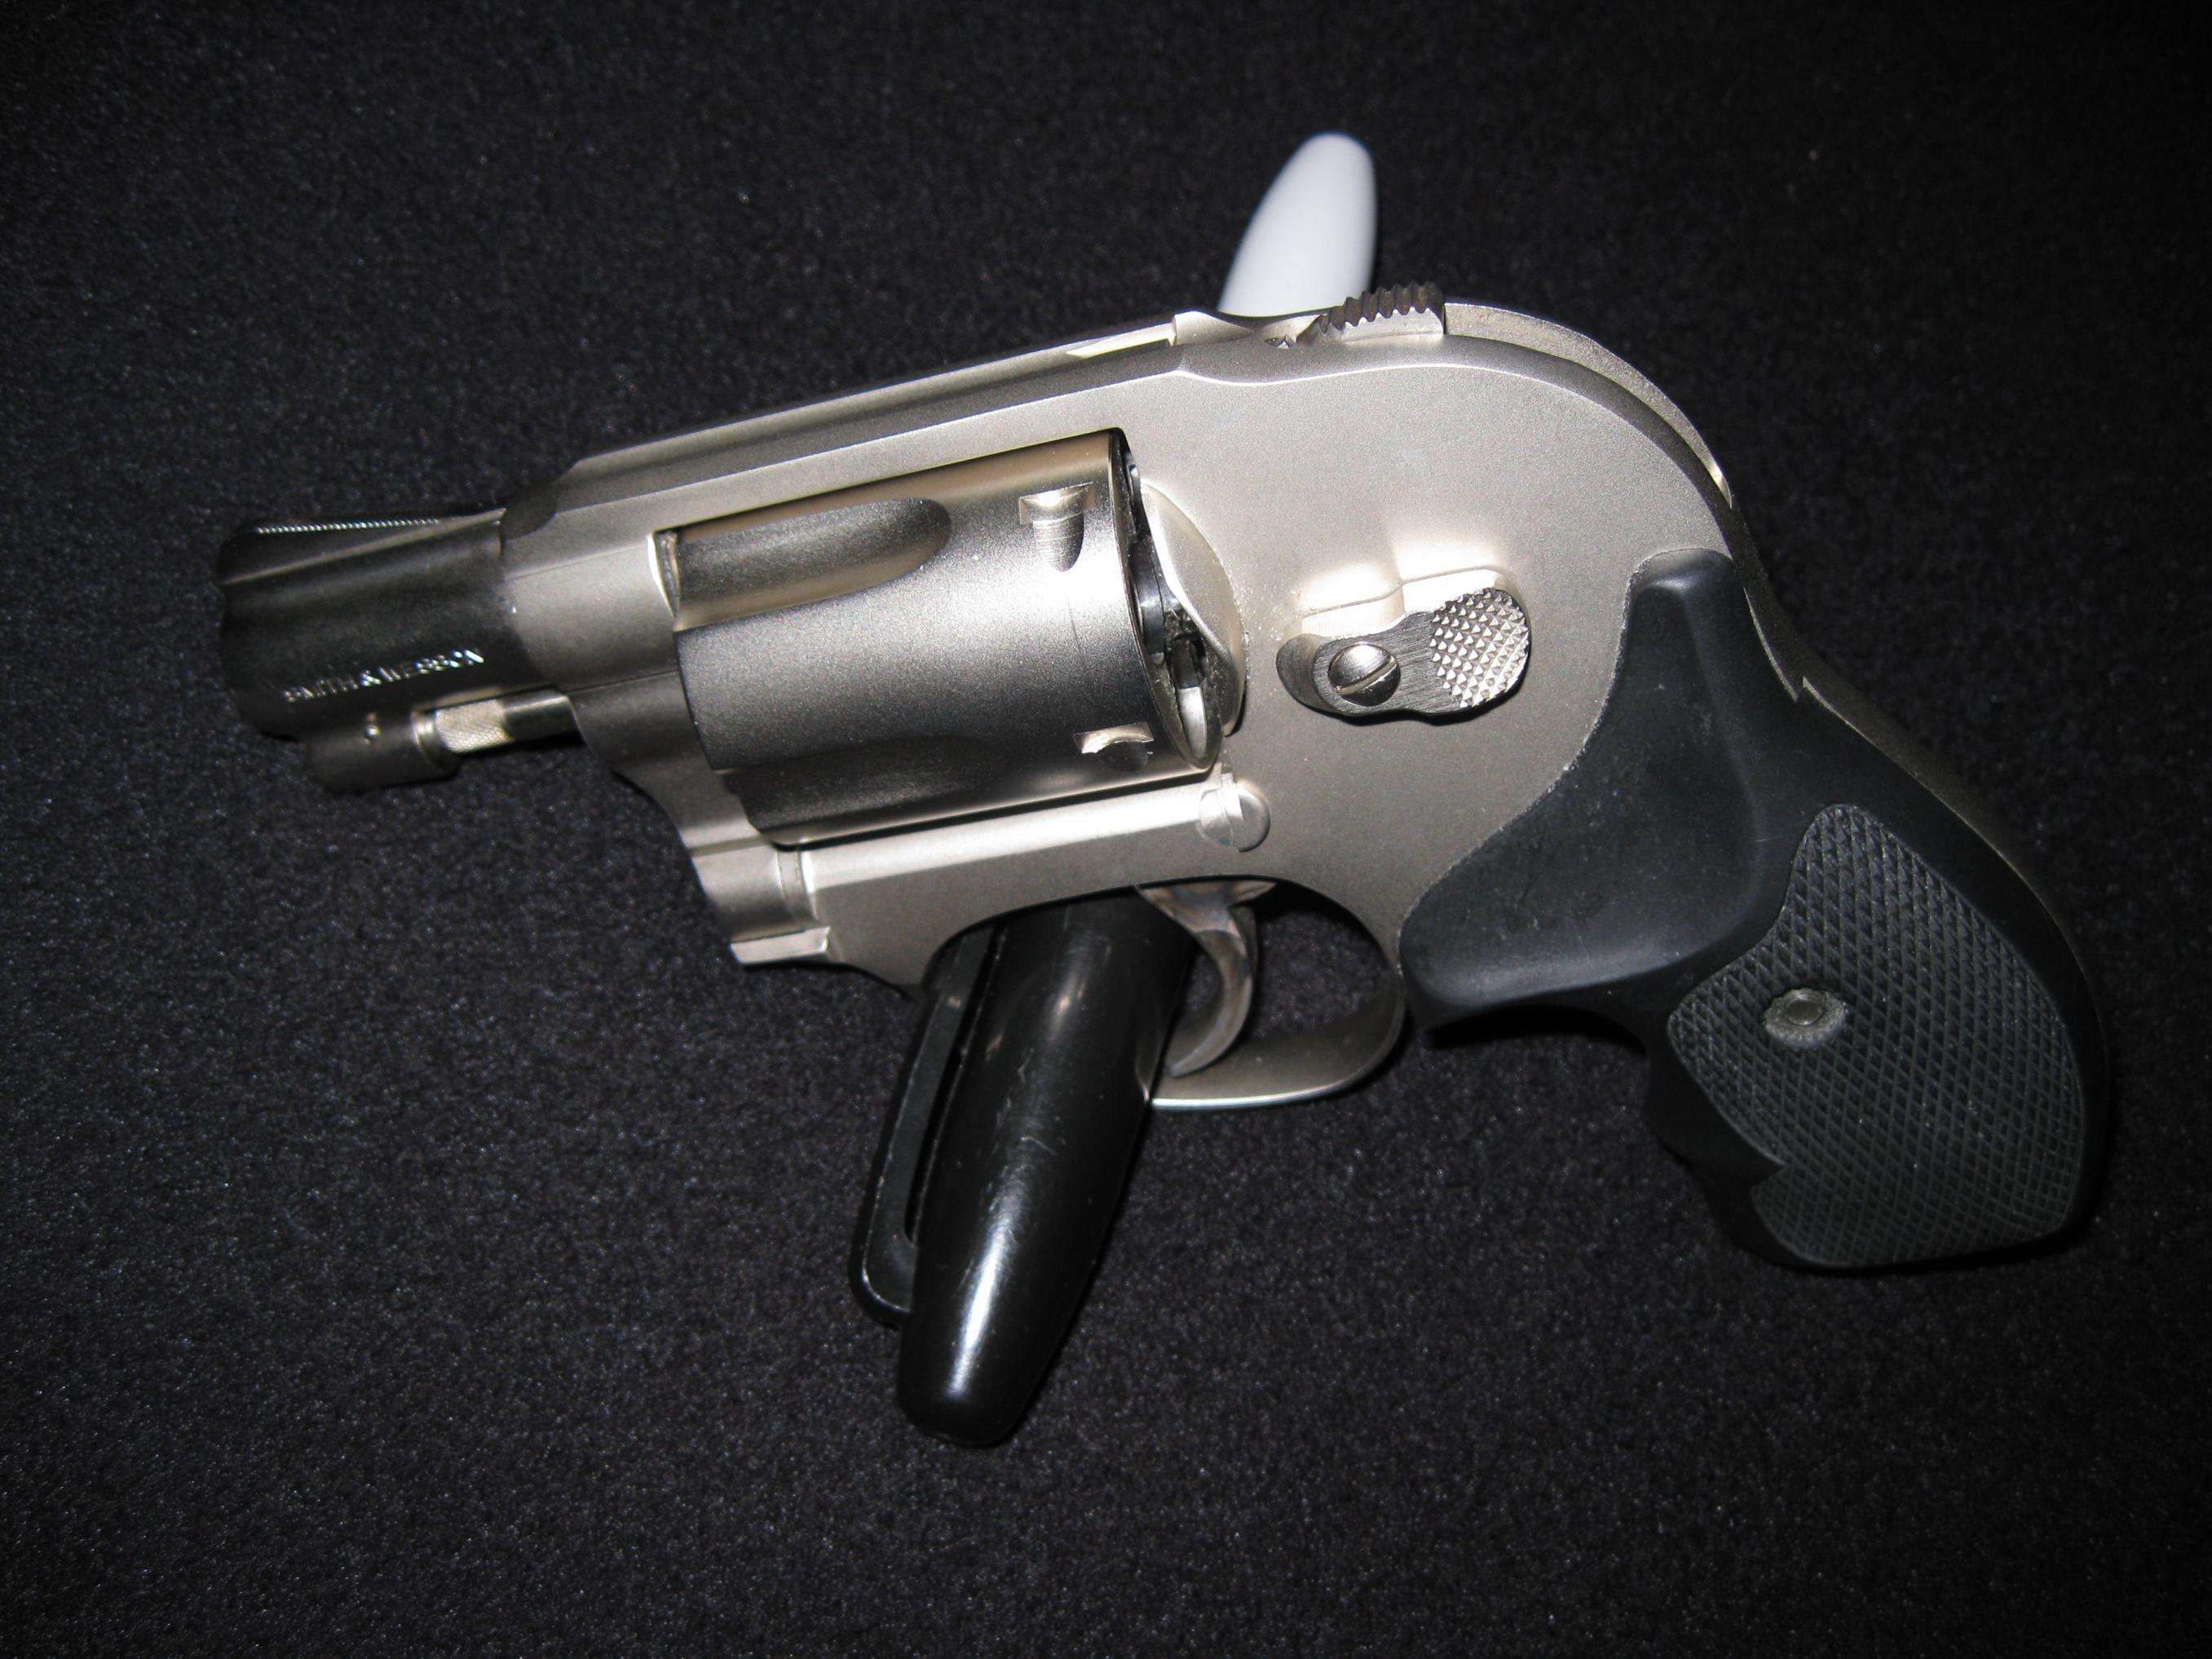 what is my S&W 638 Bodyguard worth? (pic)-img_0823.